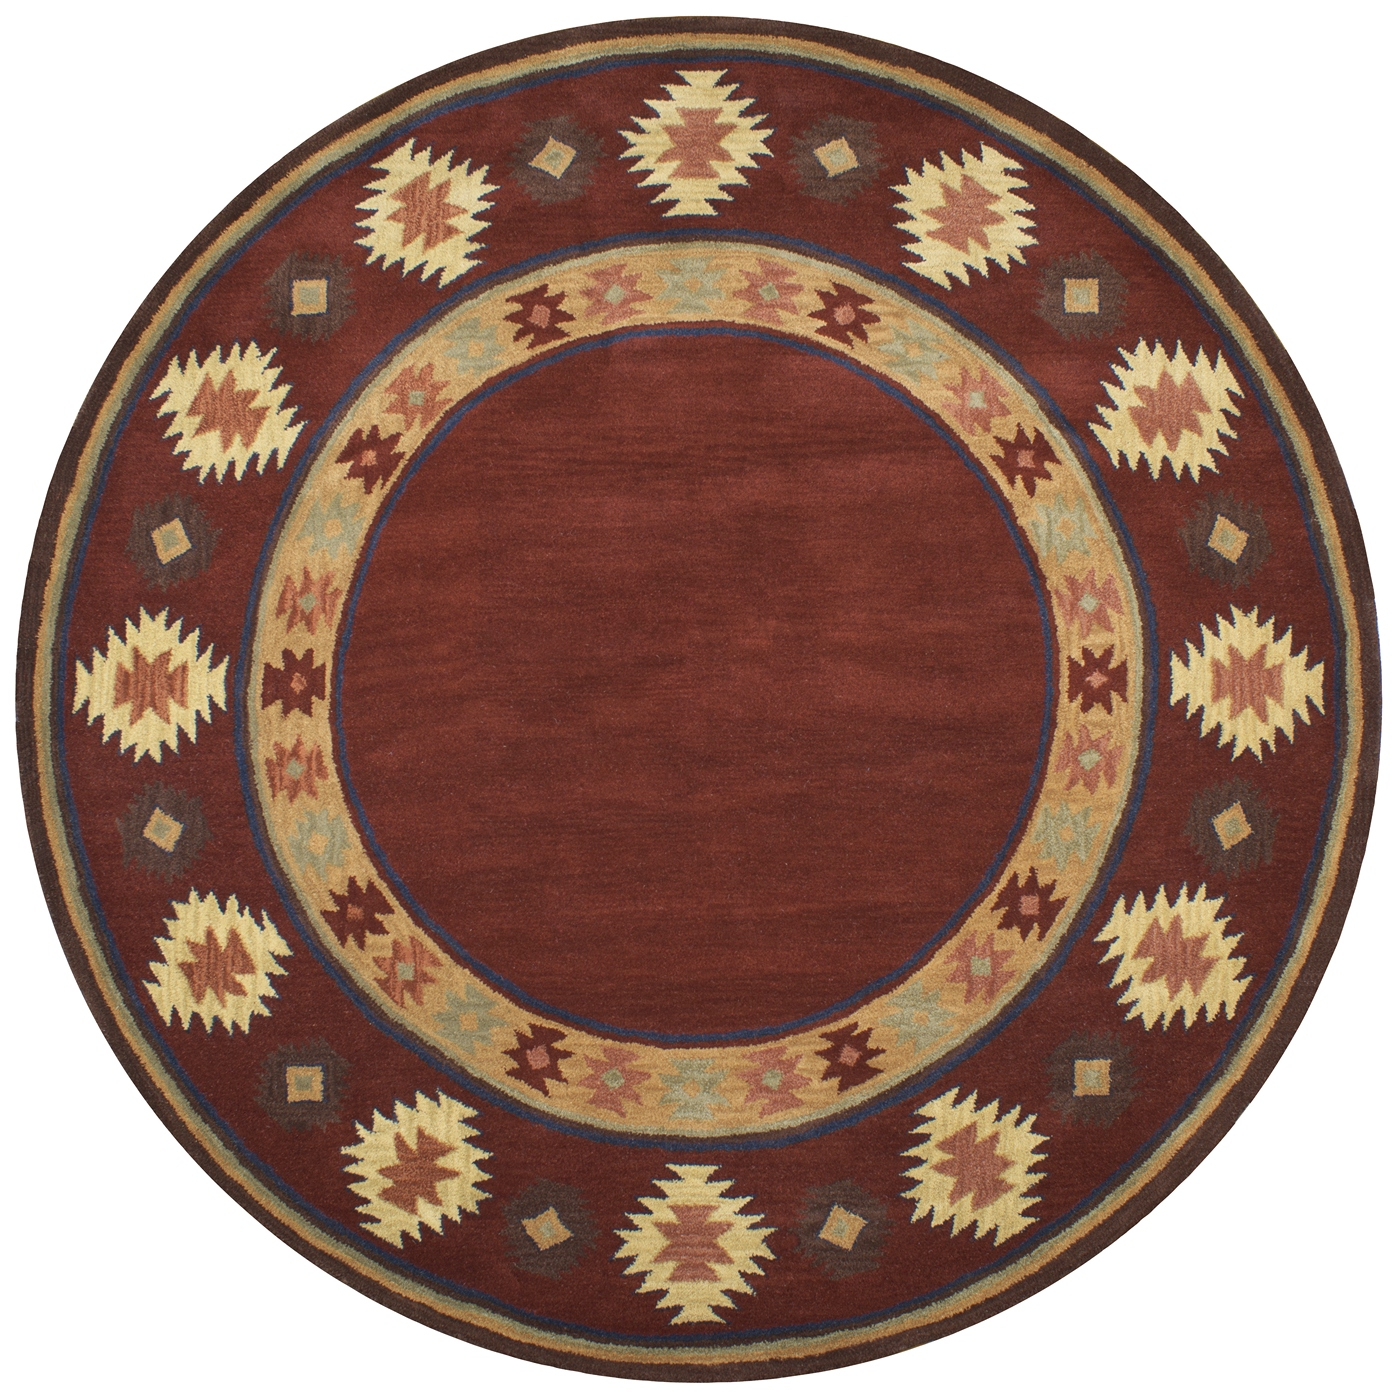 Southwest Tribal Border Wool Round Rug In Red Tan Rust